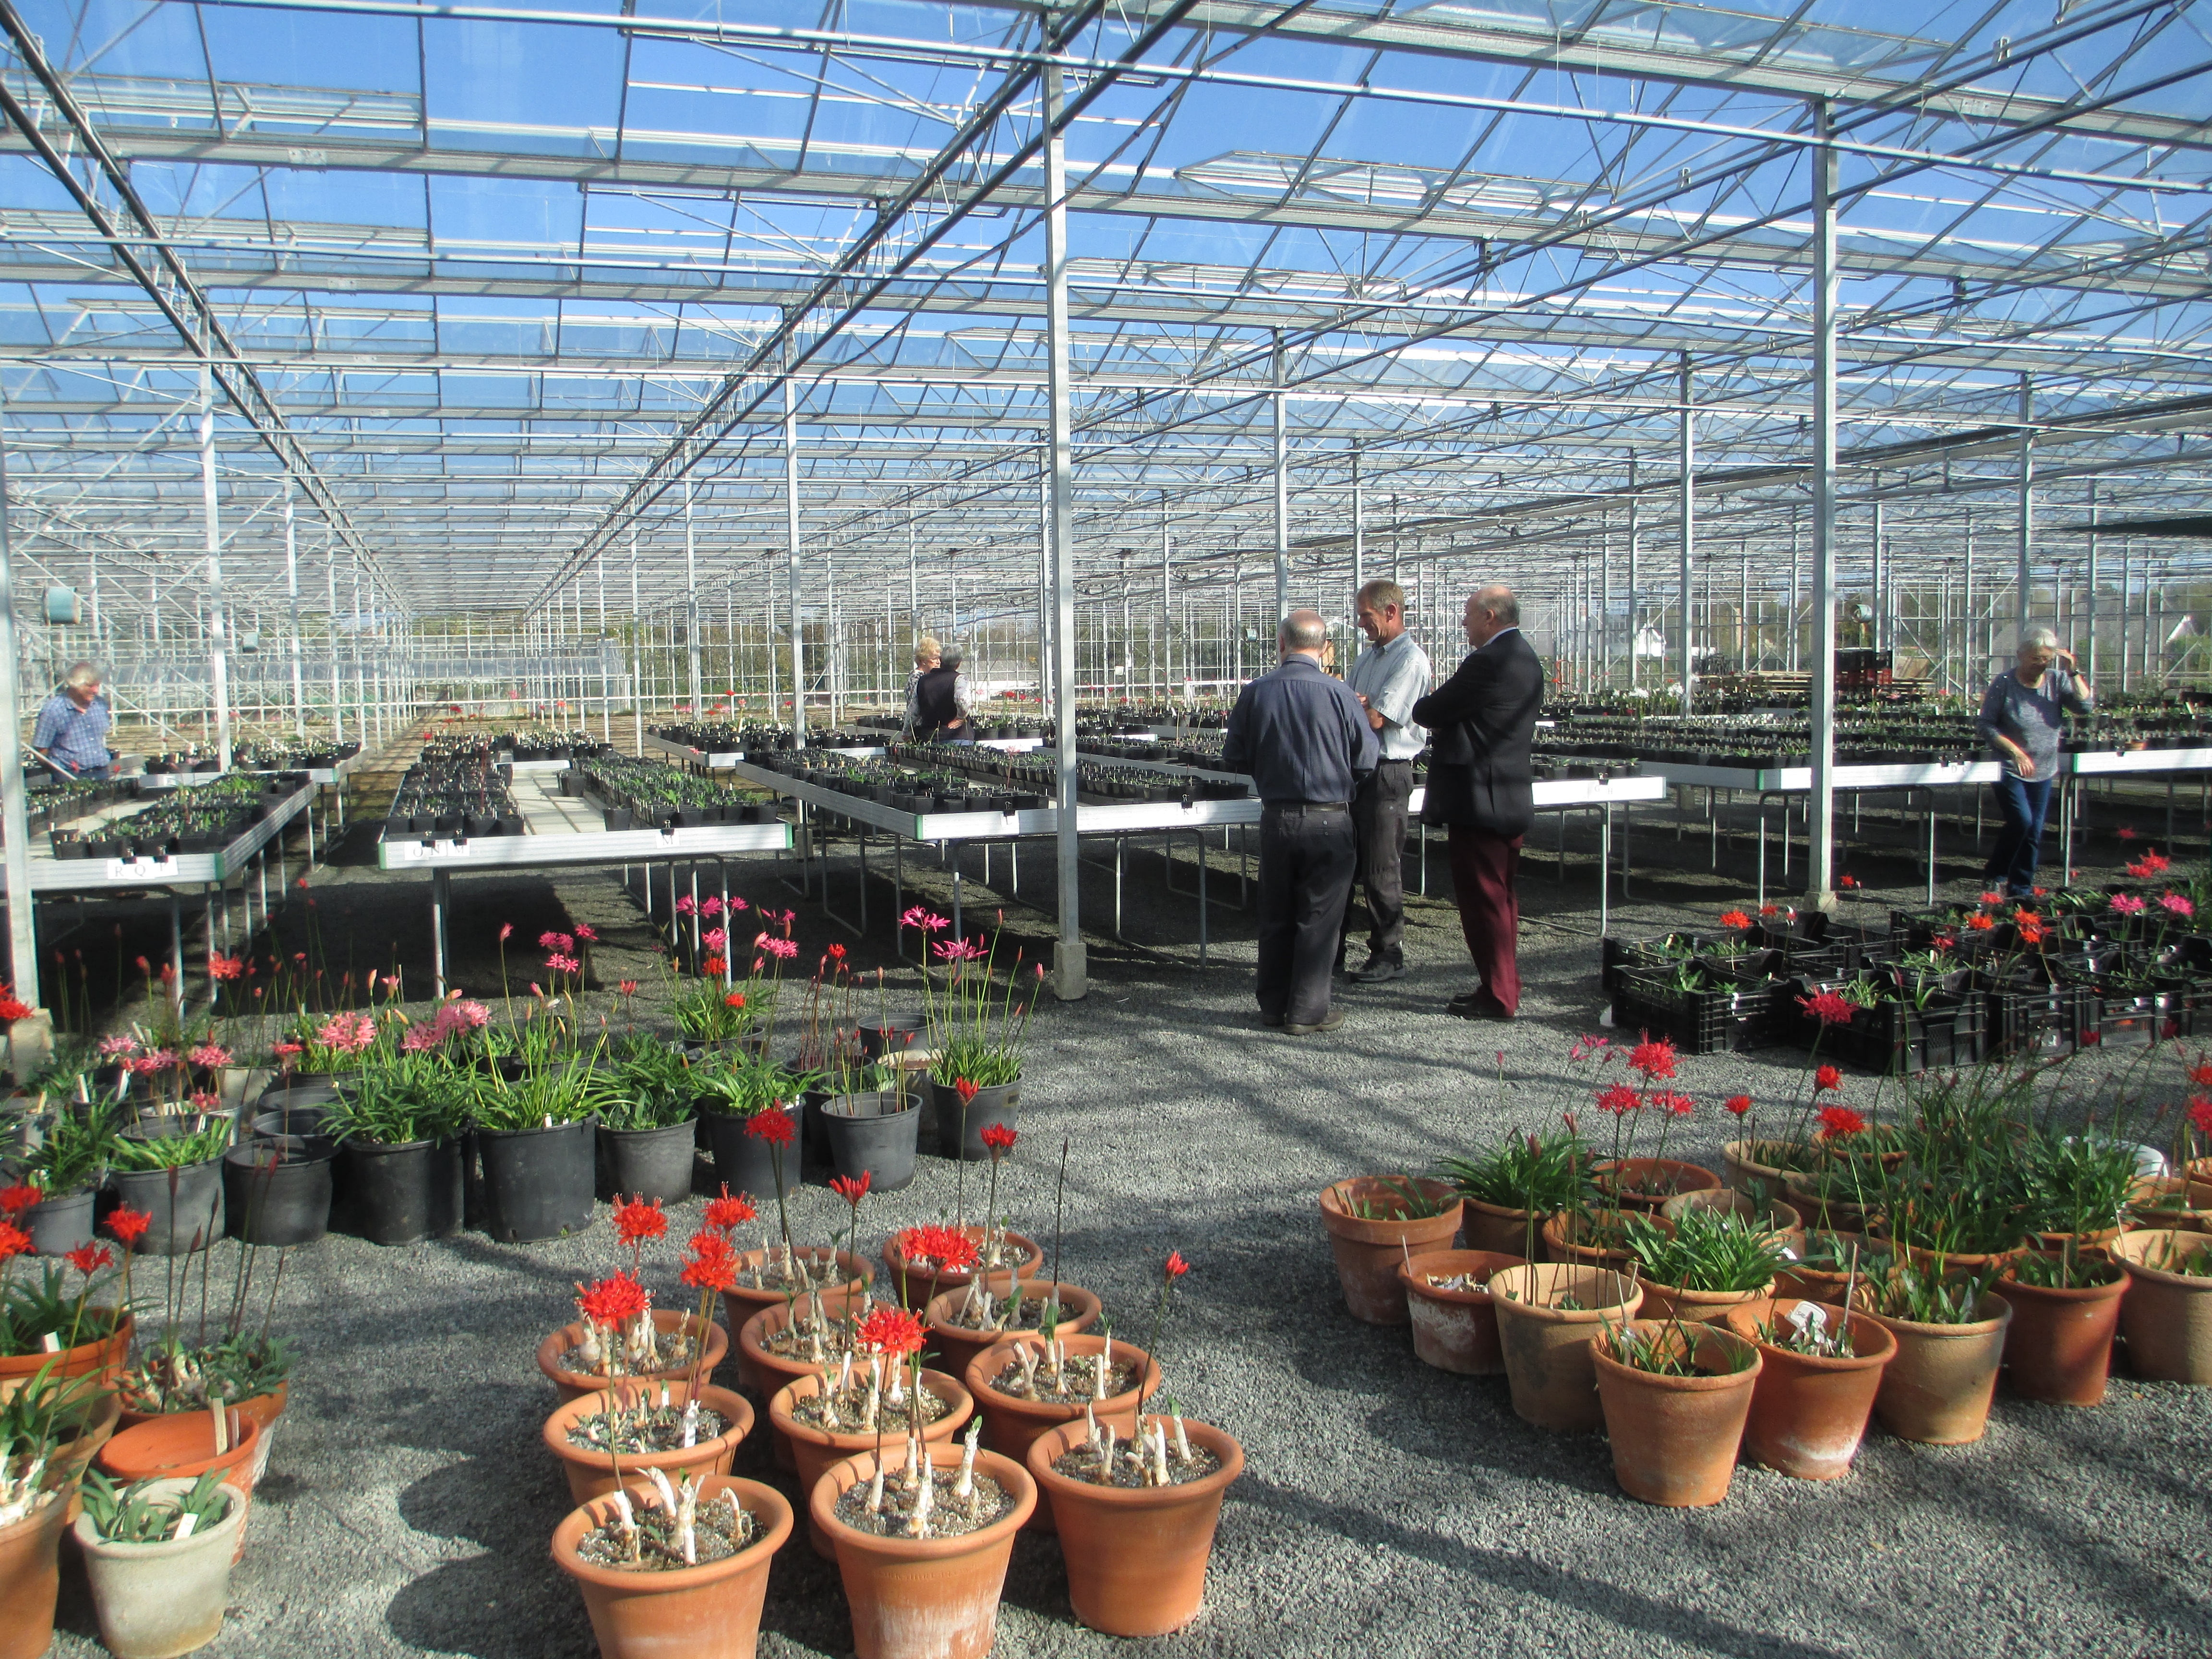 Glasshouse where the National collection is housed. NAAS member Jonny is in discussion with Andrew Lanoe and David Fermont, Plant Heritage Guernsey Chairman.